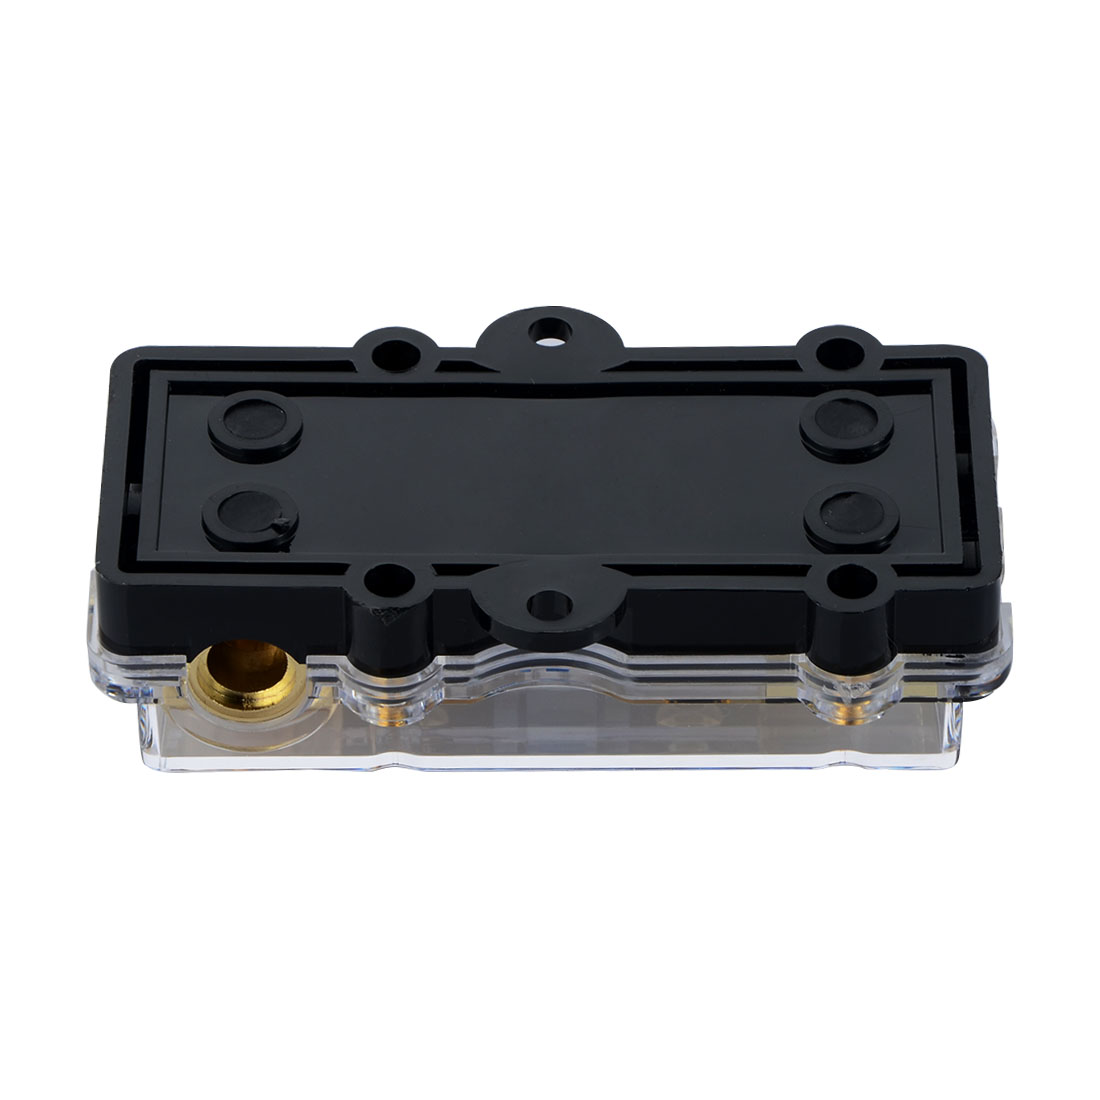 Купить с кэшбэком 1PCS Universal Car Auto Vehicles Audio Amplifier 1 In 2 Ways Out 60A Fuse Holder Fuse Box